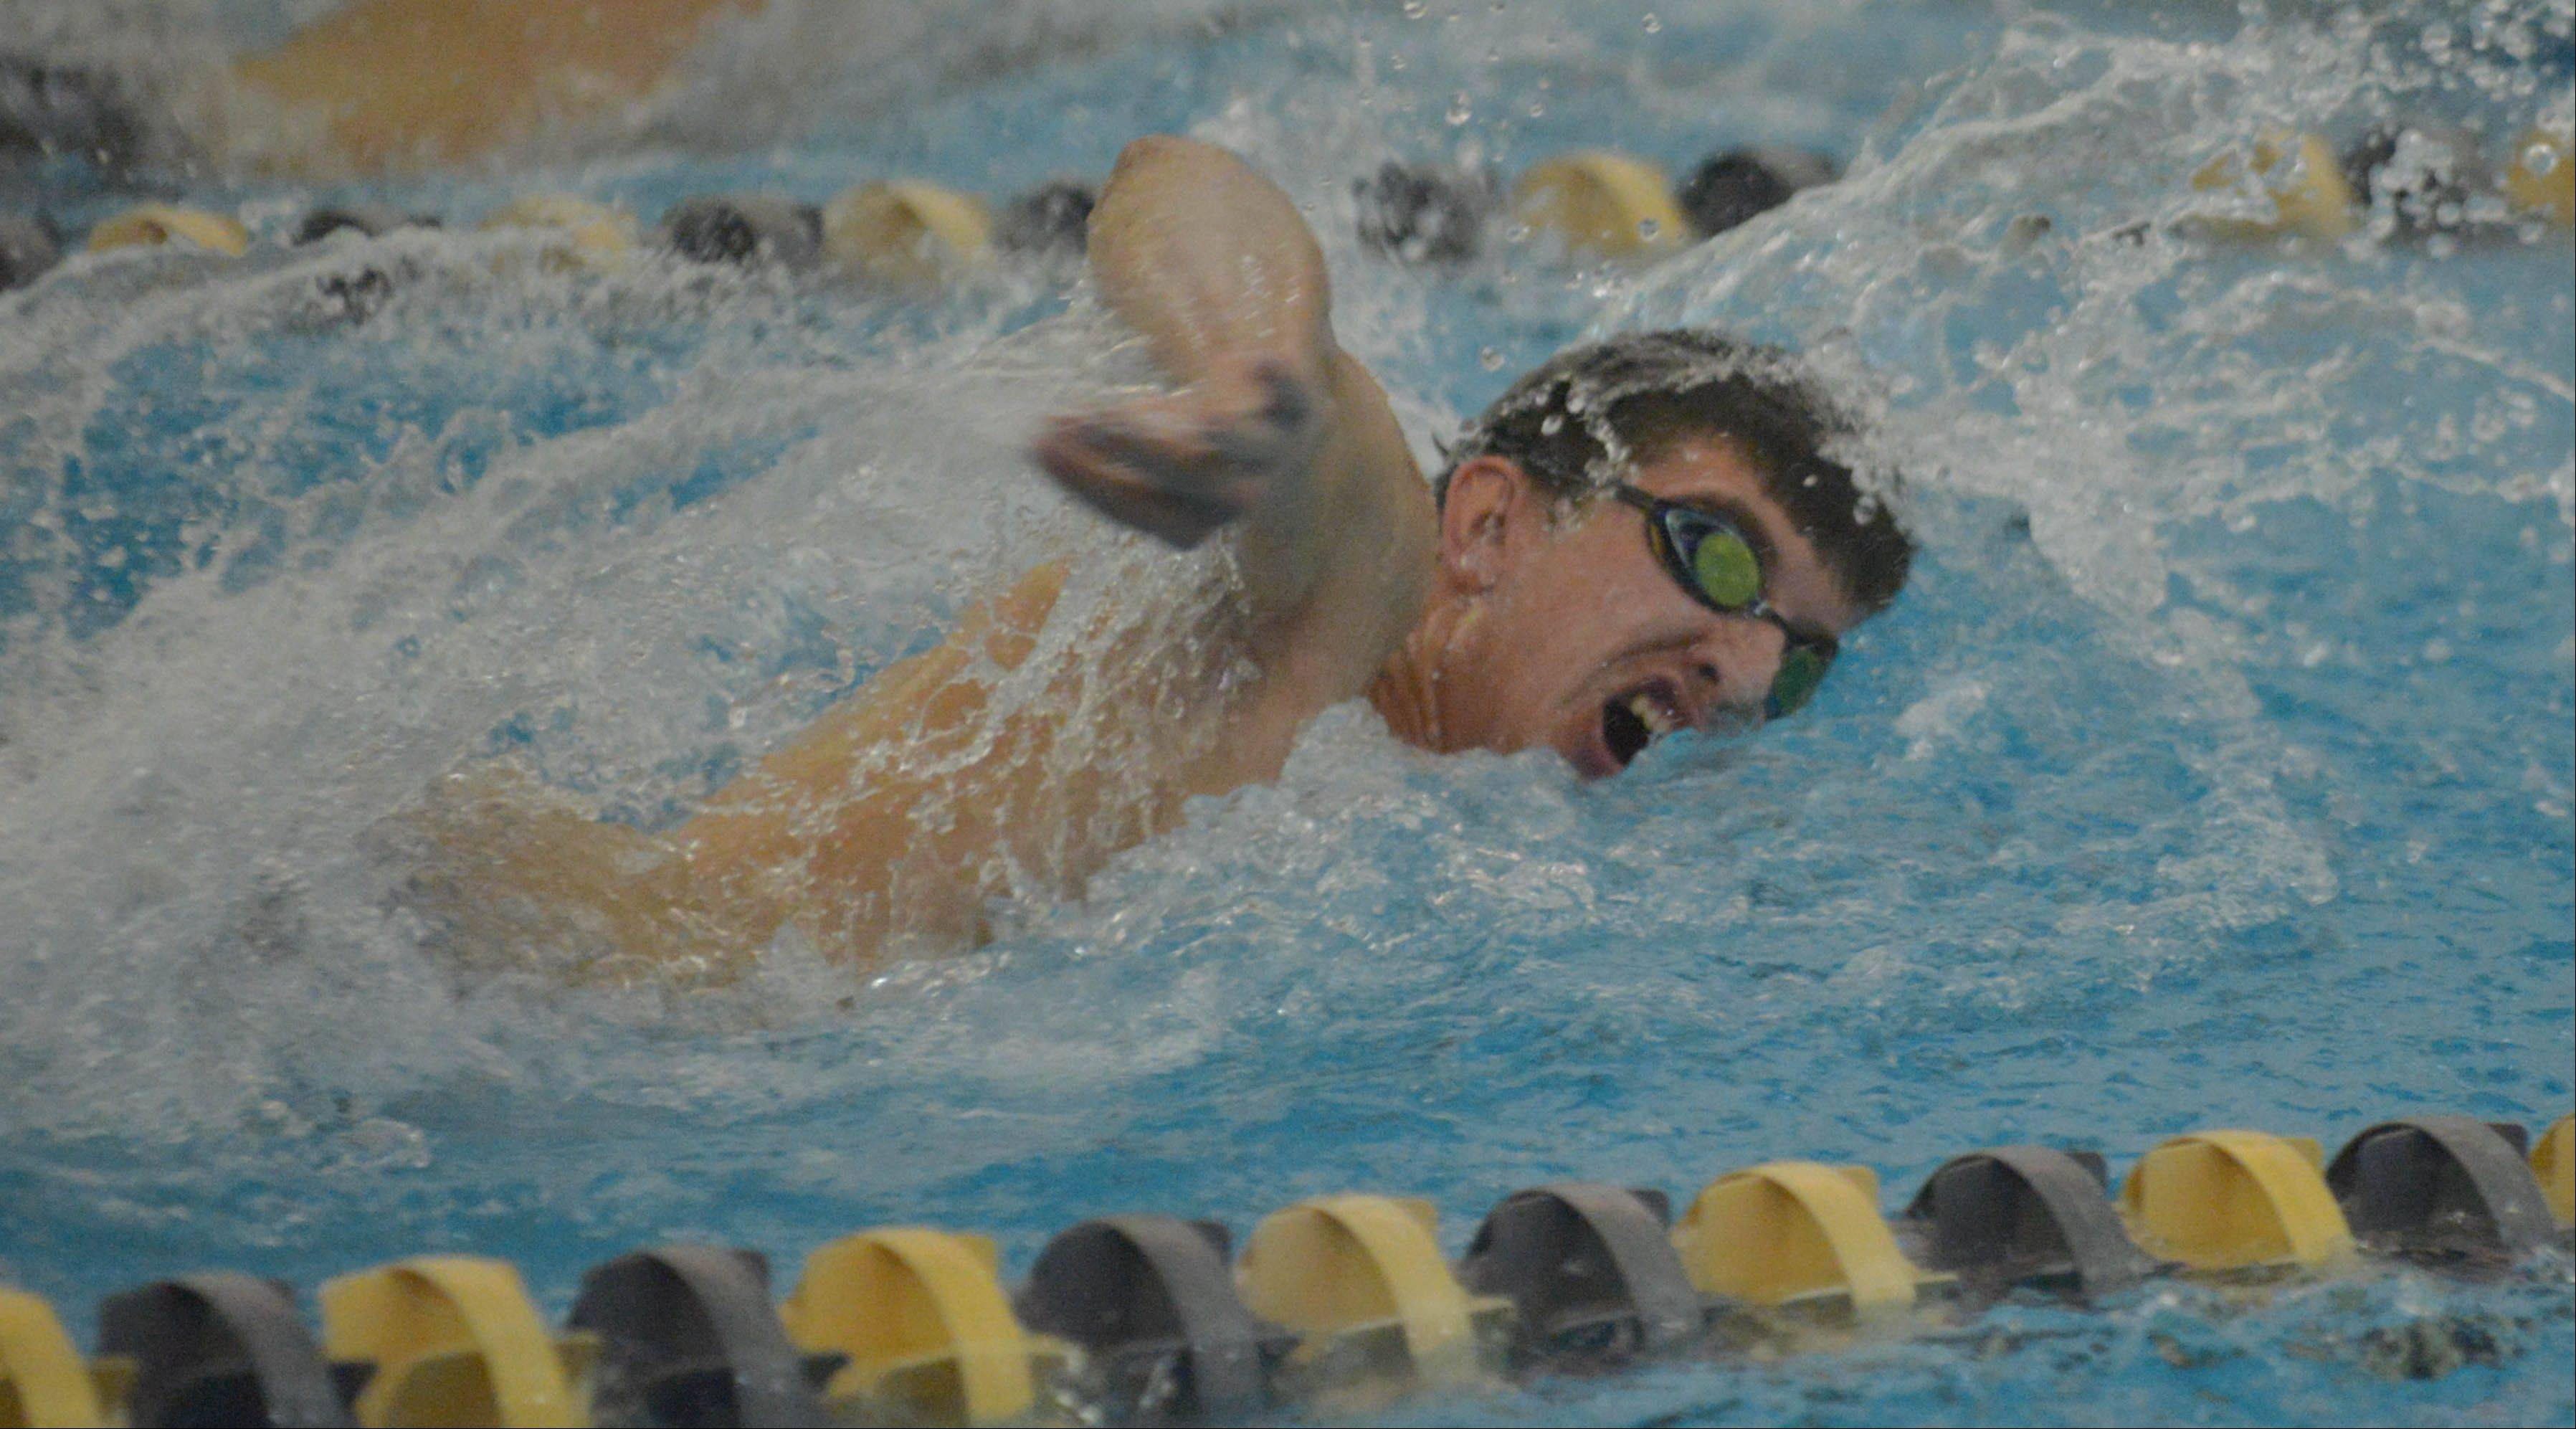 Matthew Ciezczak of Neuqua Valley swims the 200 Free during the Neuqua Valley boys swimming invitational Saturday.